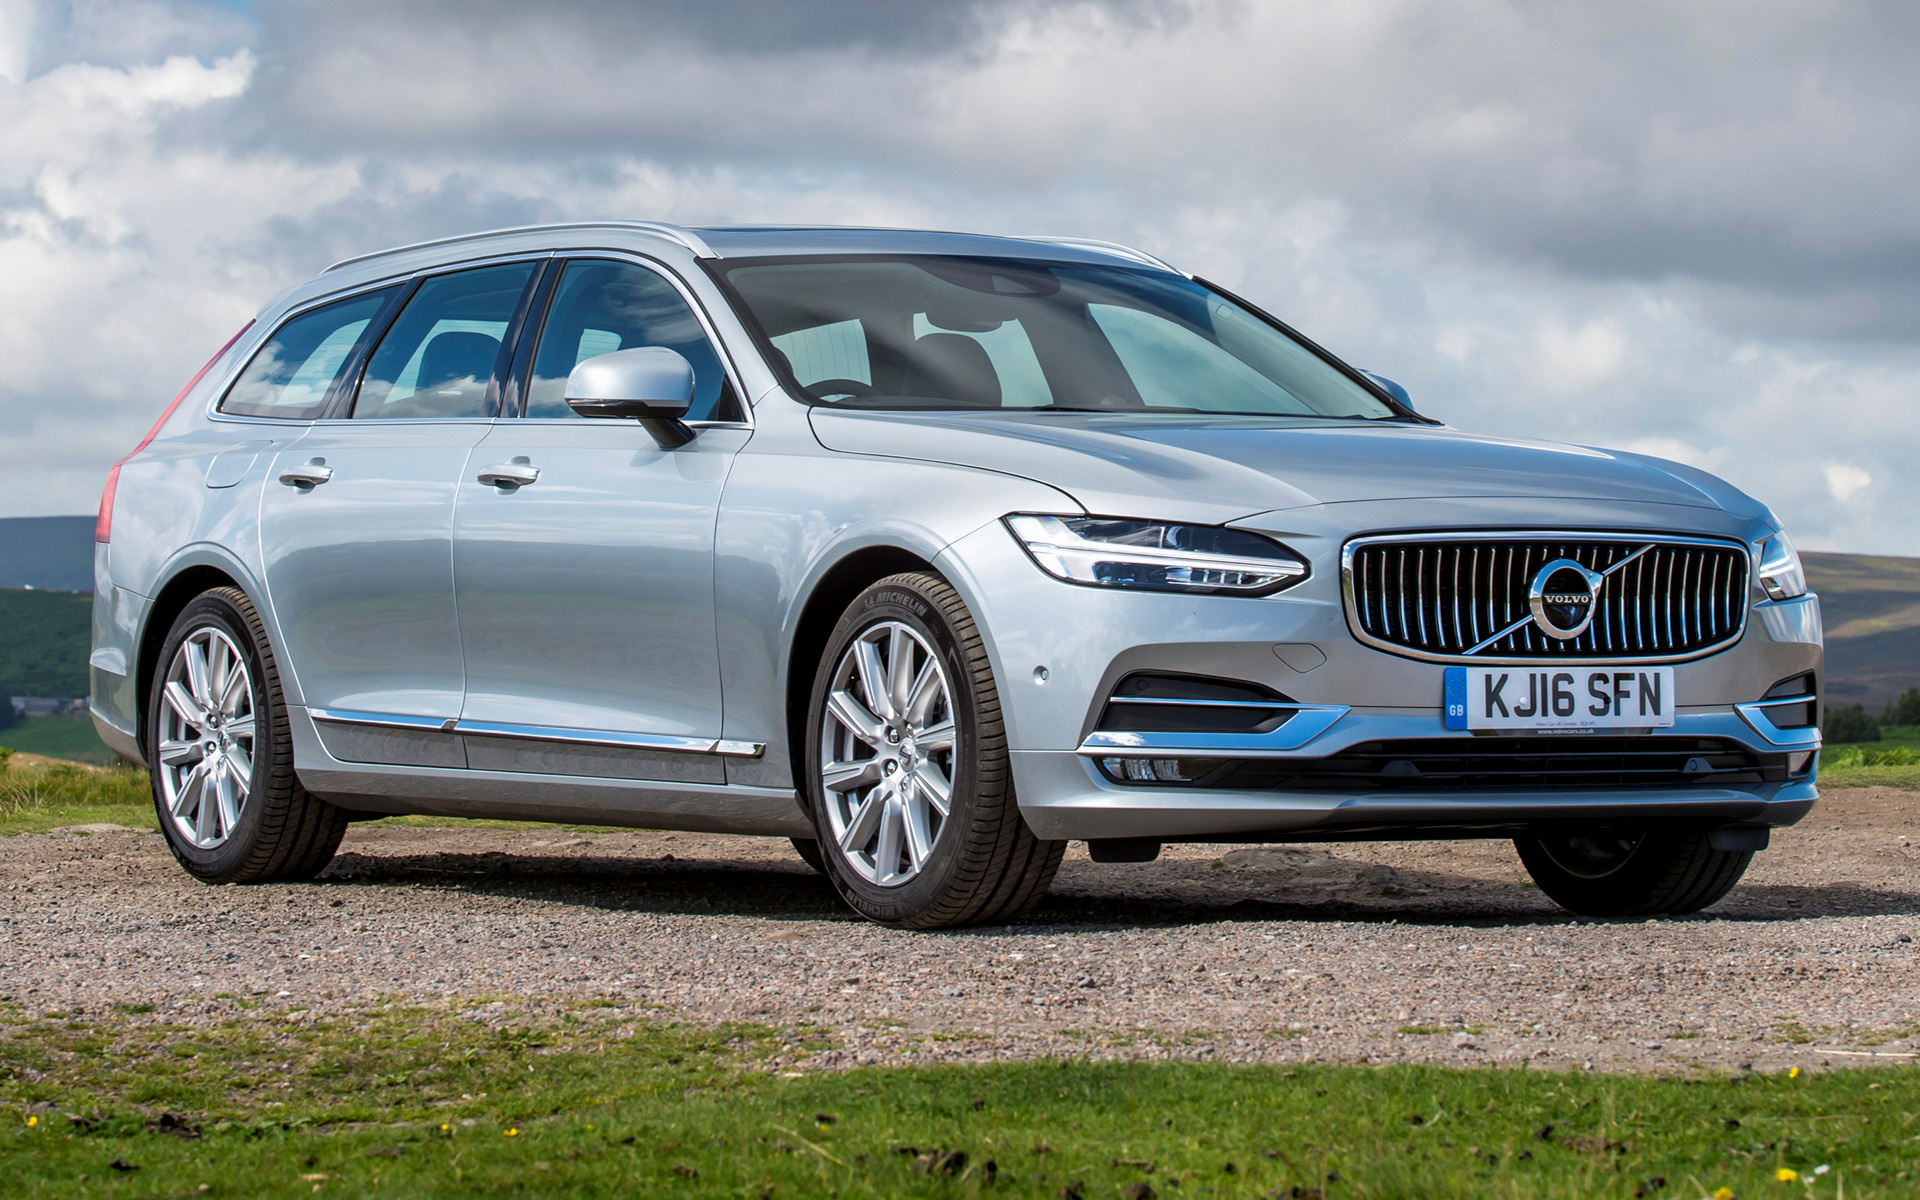 2016 Volvo V90 Inscription Uk Wallpapers And Hd Images